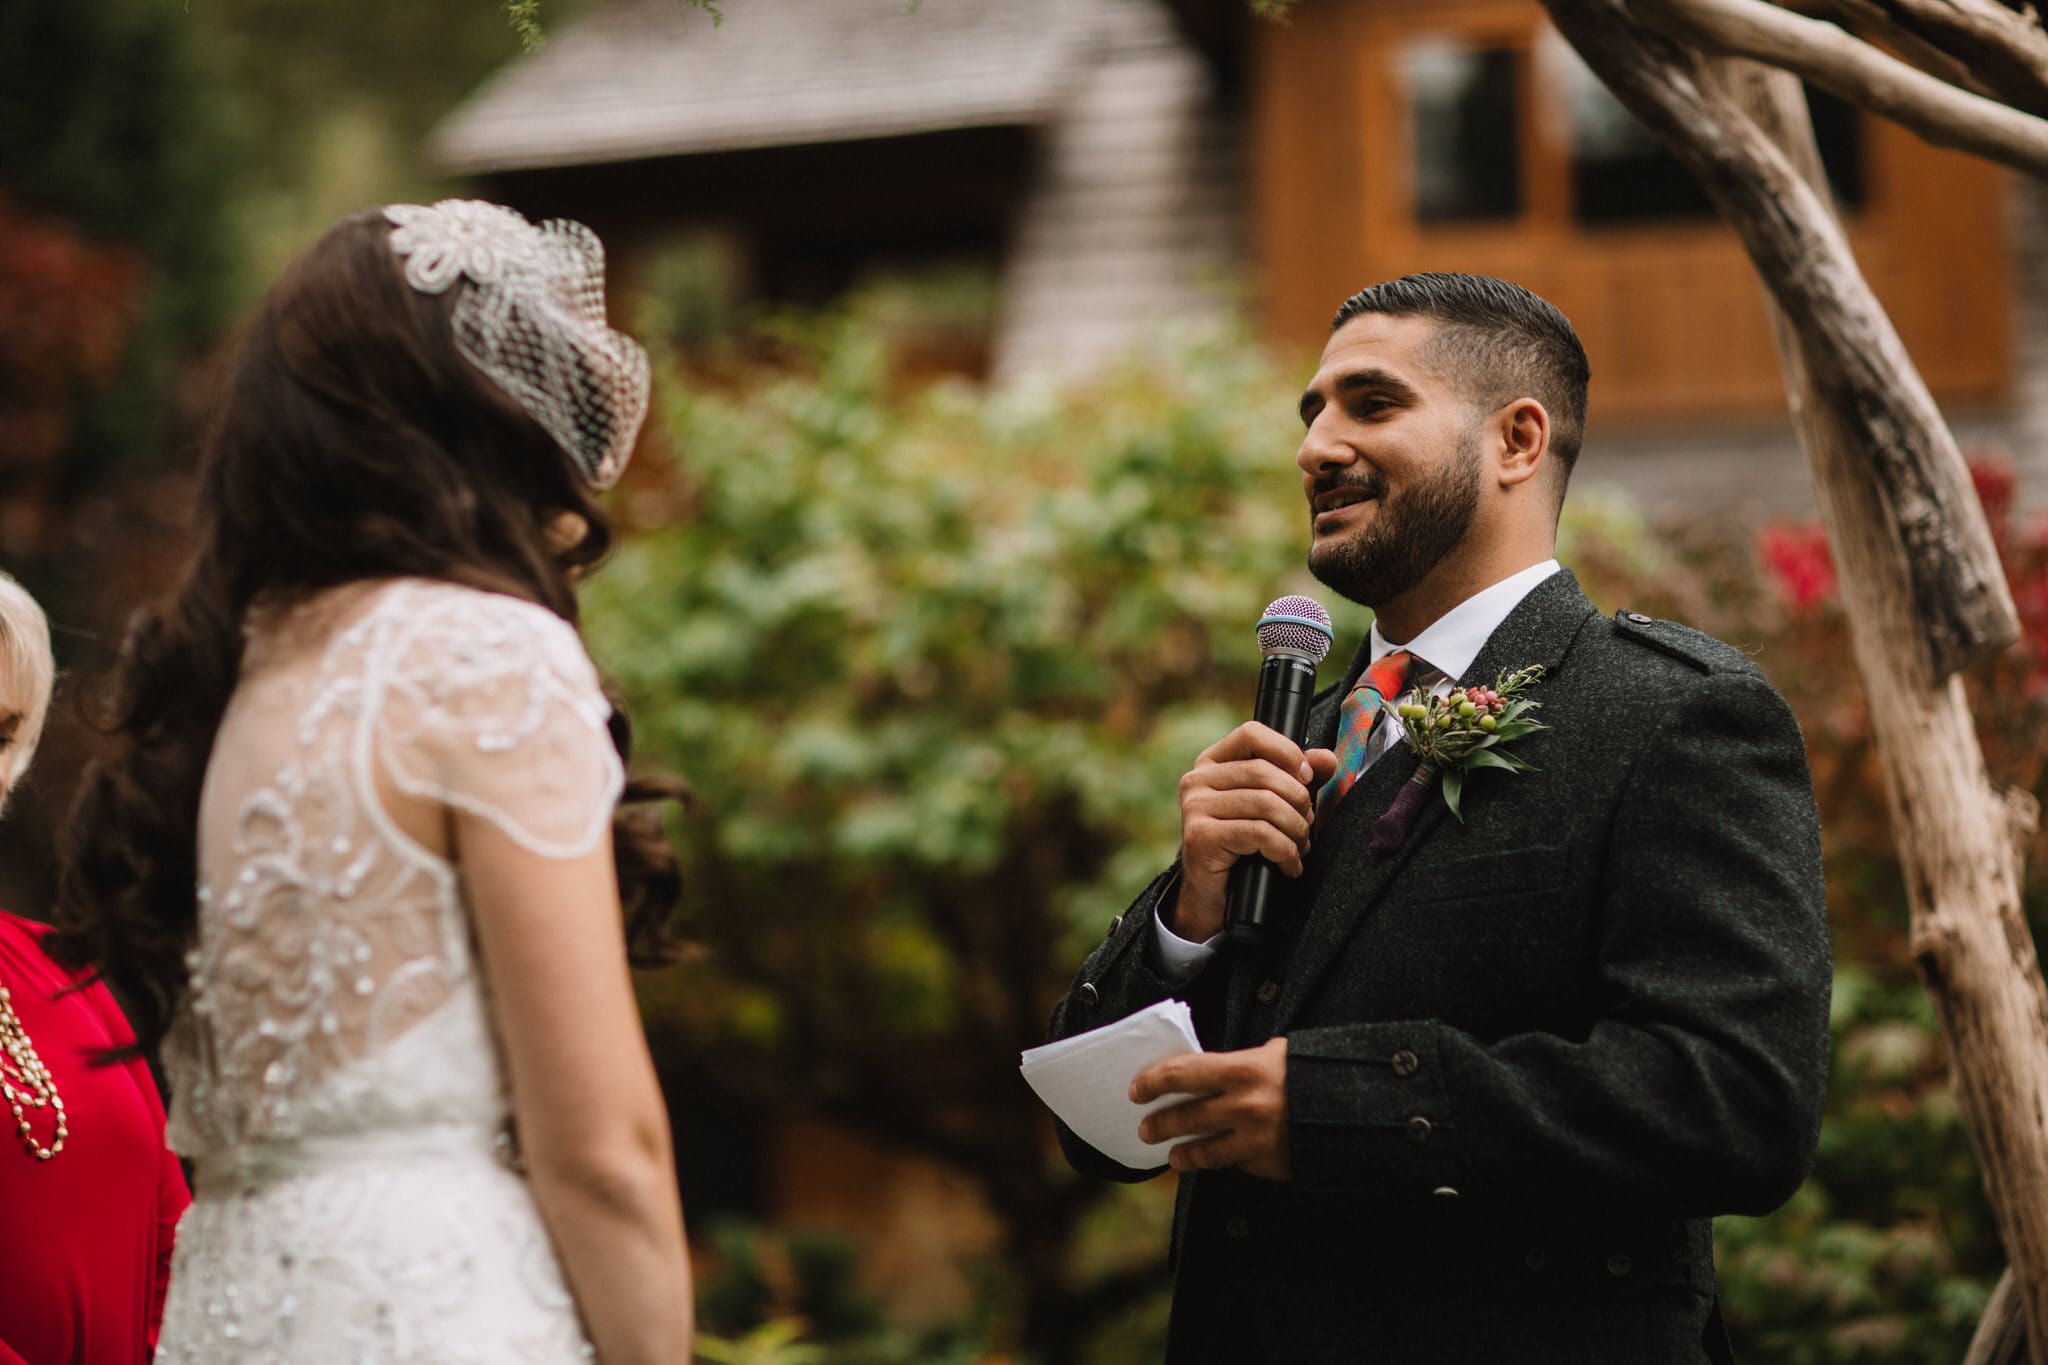 Grooms vows at Whistler wedding. Destination wedding photographer Brent Calis.